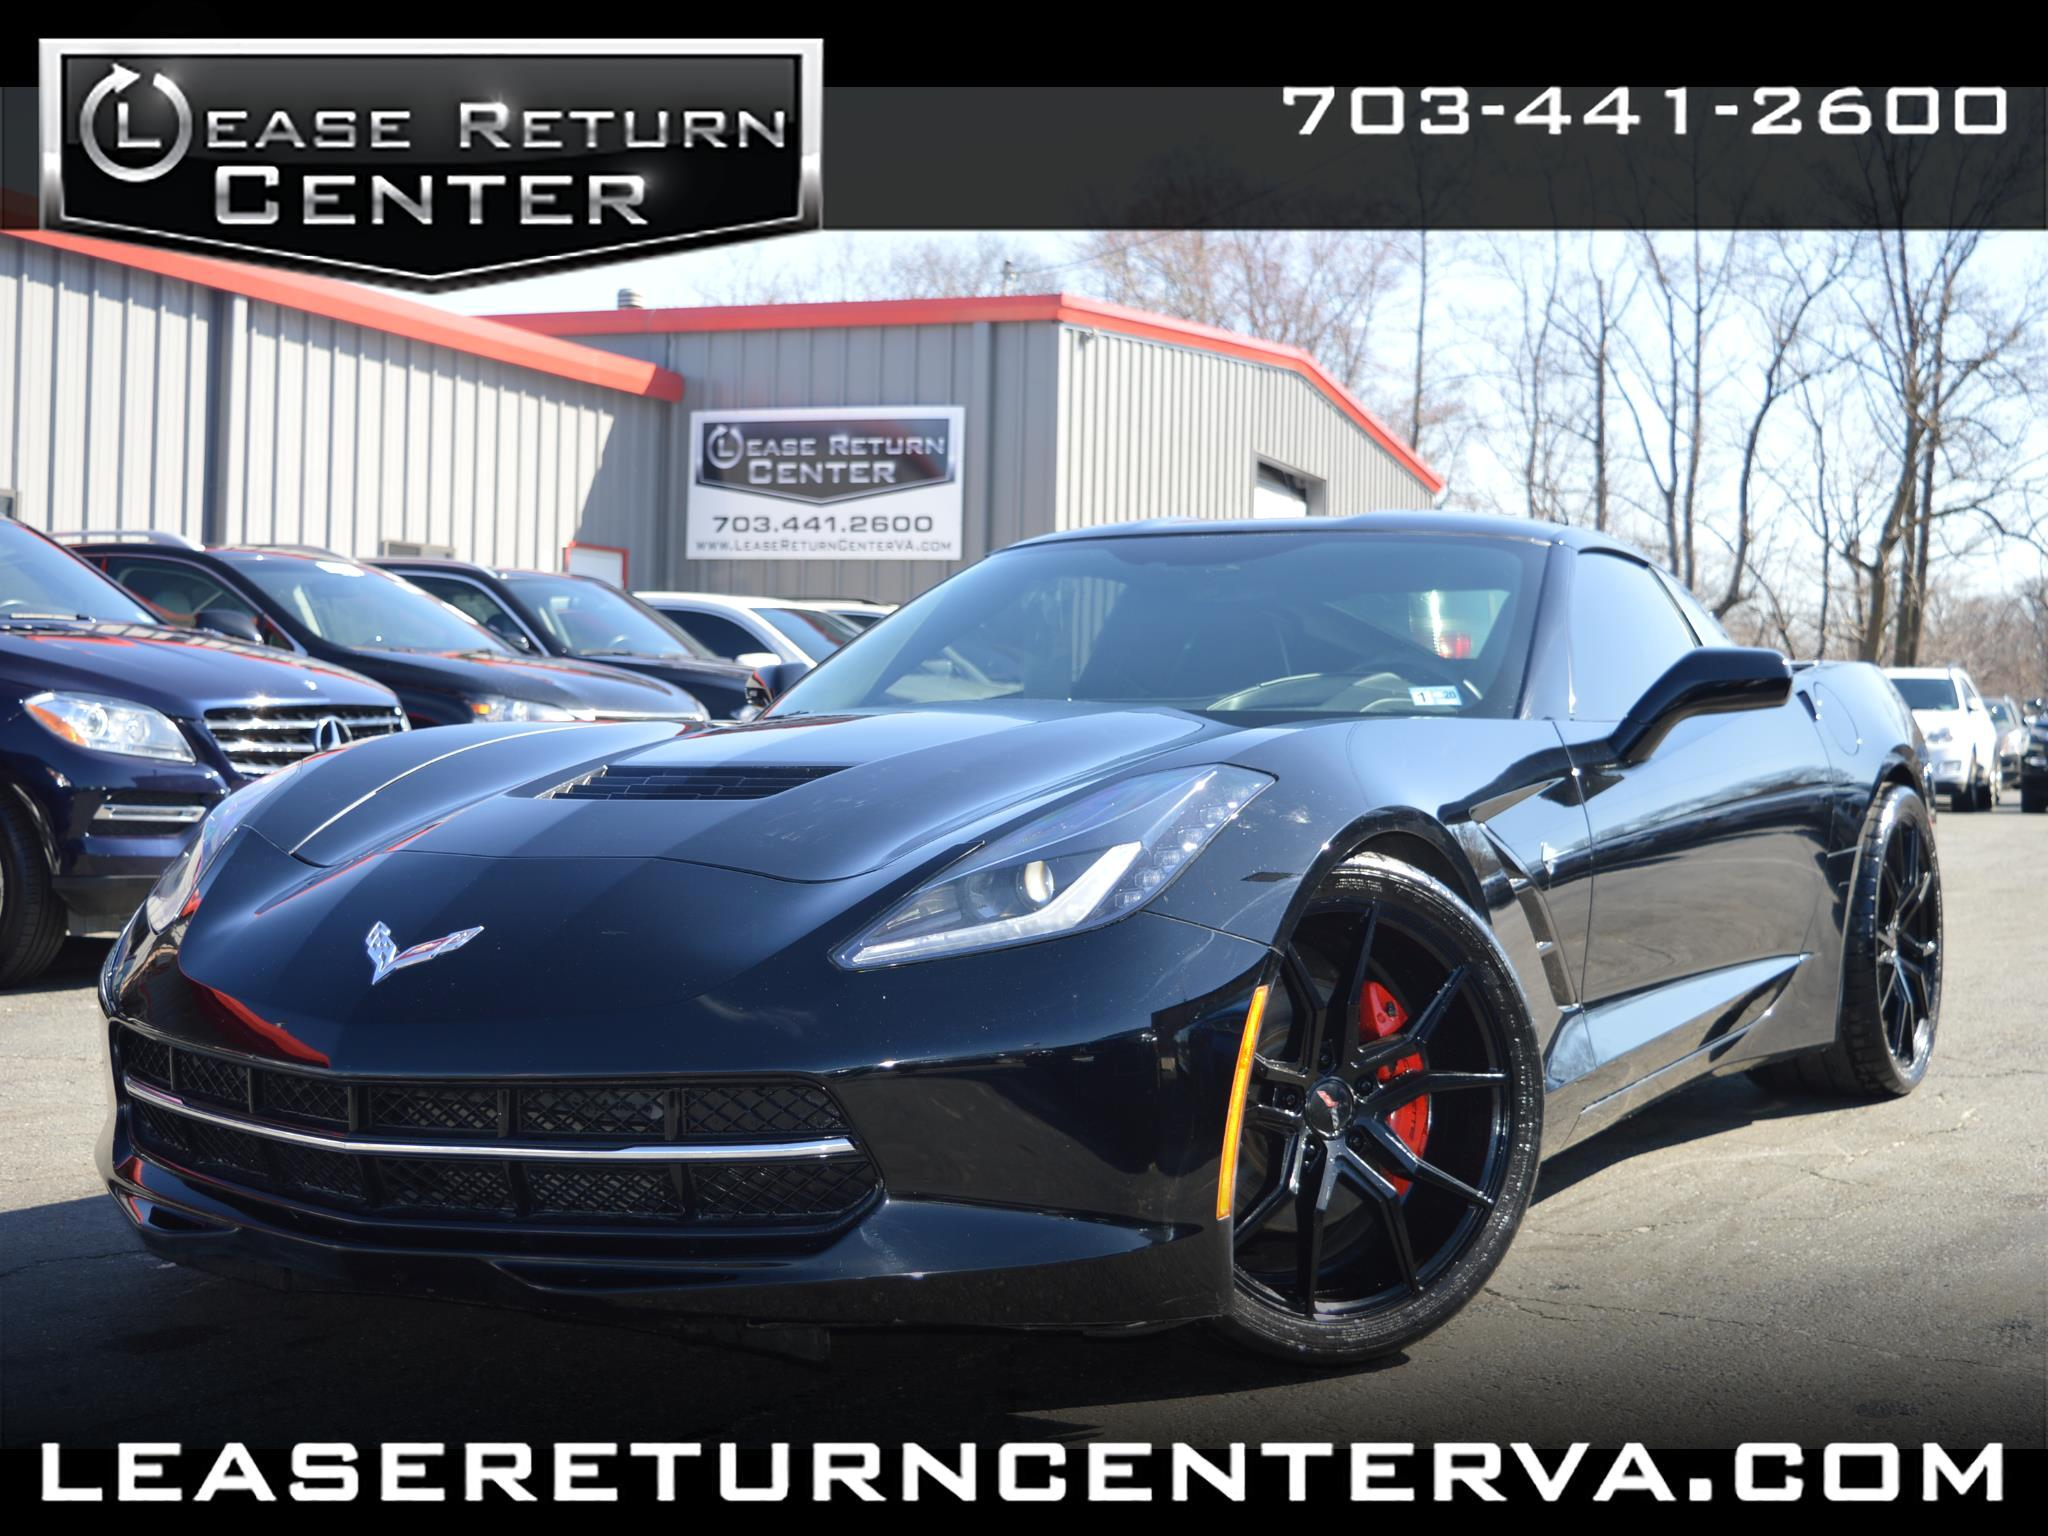 2015 Chevrolet Corvette 2dr Stingray Cpe w/2LT